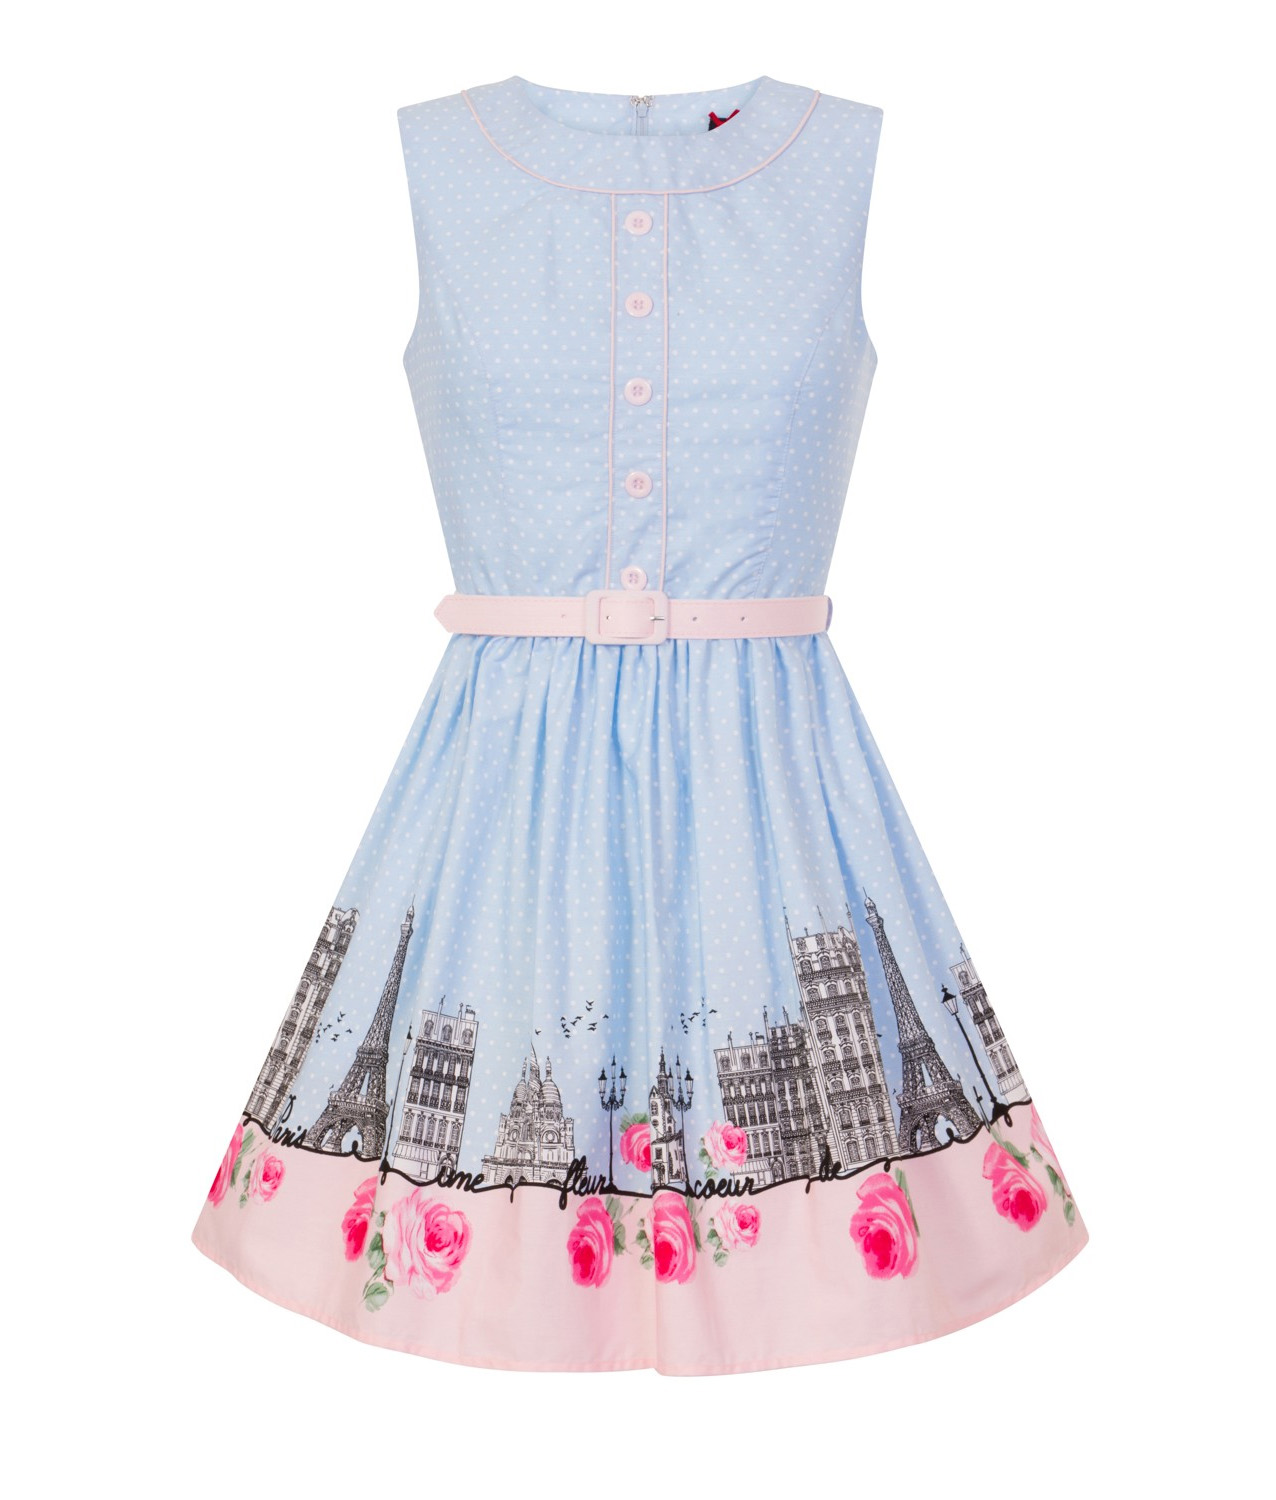 Hell-Bunny-50s-Vintage-Blue-Polka-Dot-PANAME-Mini-Dress-Paris-All-Sizes thumbnail 5